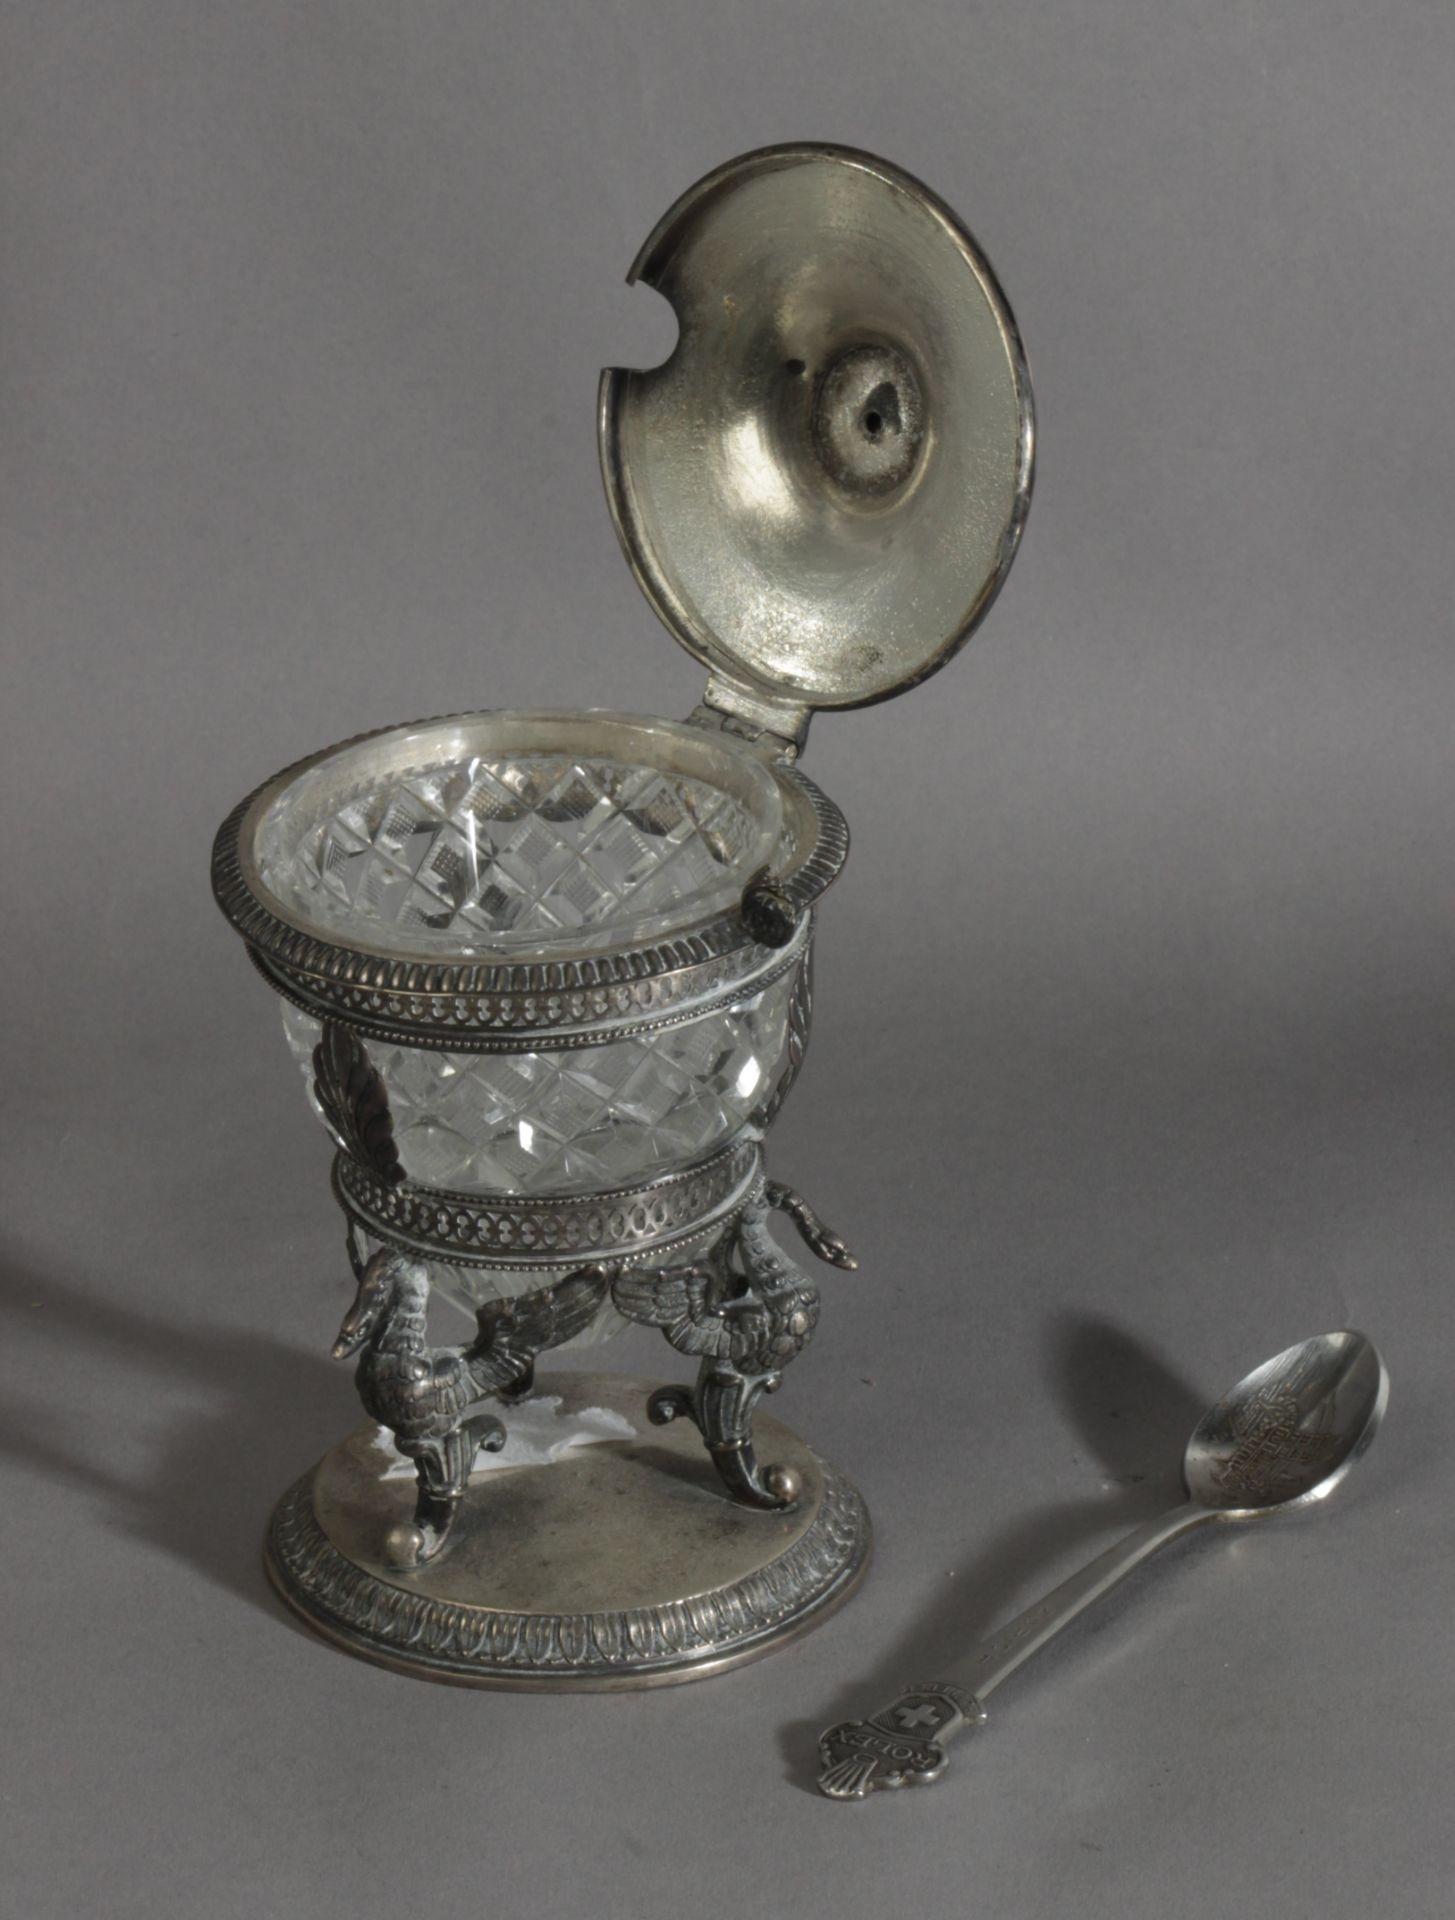 A 19th century French sugar bowl in silver and cut glass